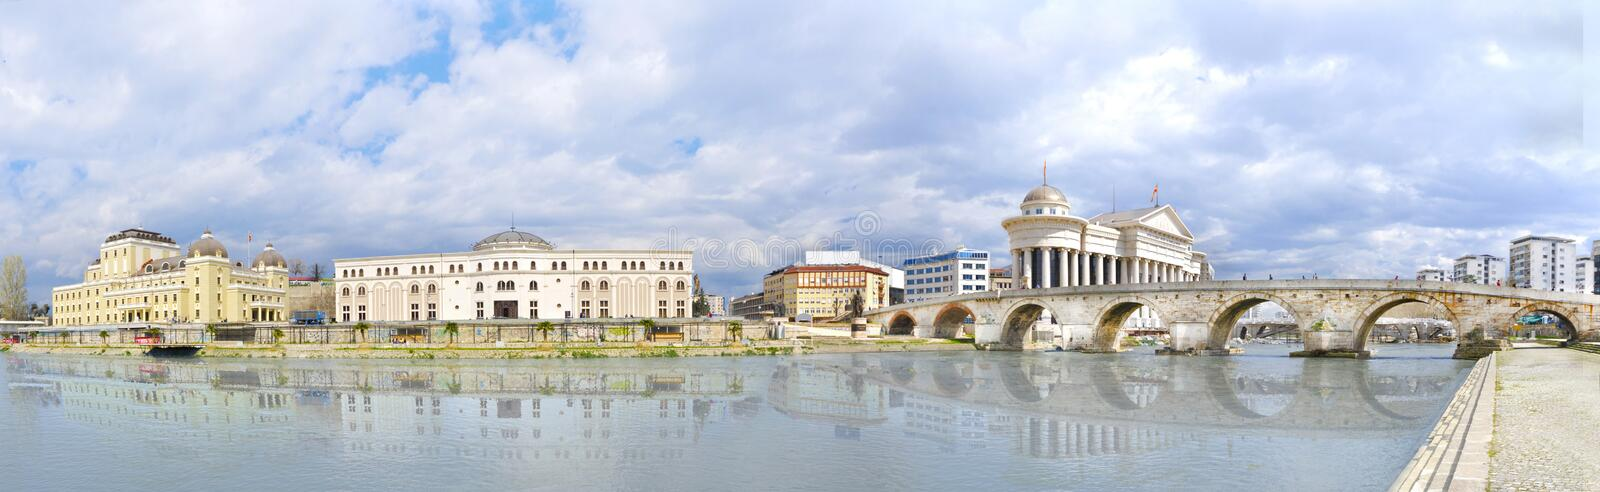 View of capital city of Macedonia - Skopje. Beautiful old stone bridge and archaeological museum of Macedonia, Vardar river wather reflection royalty free stock images